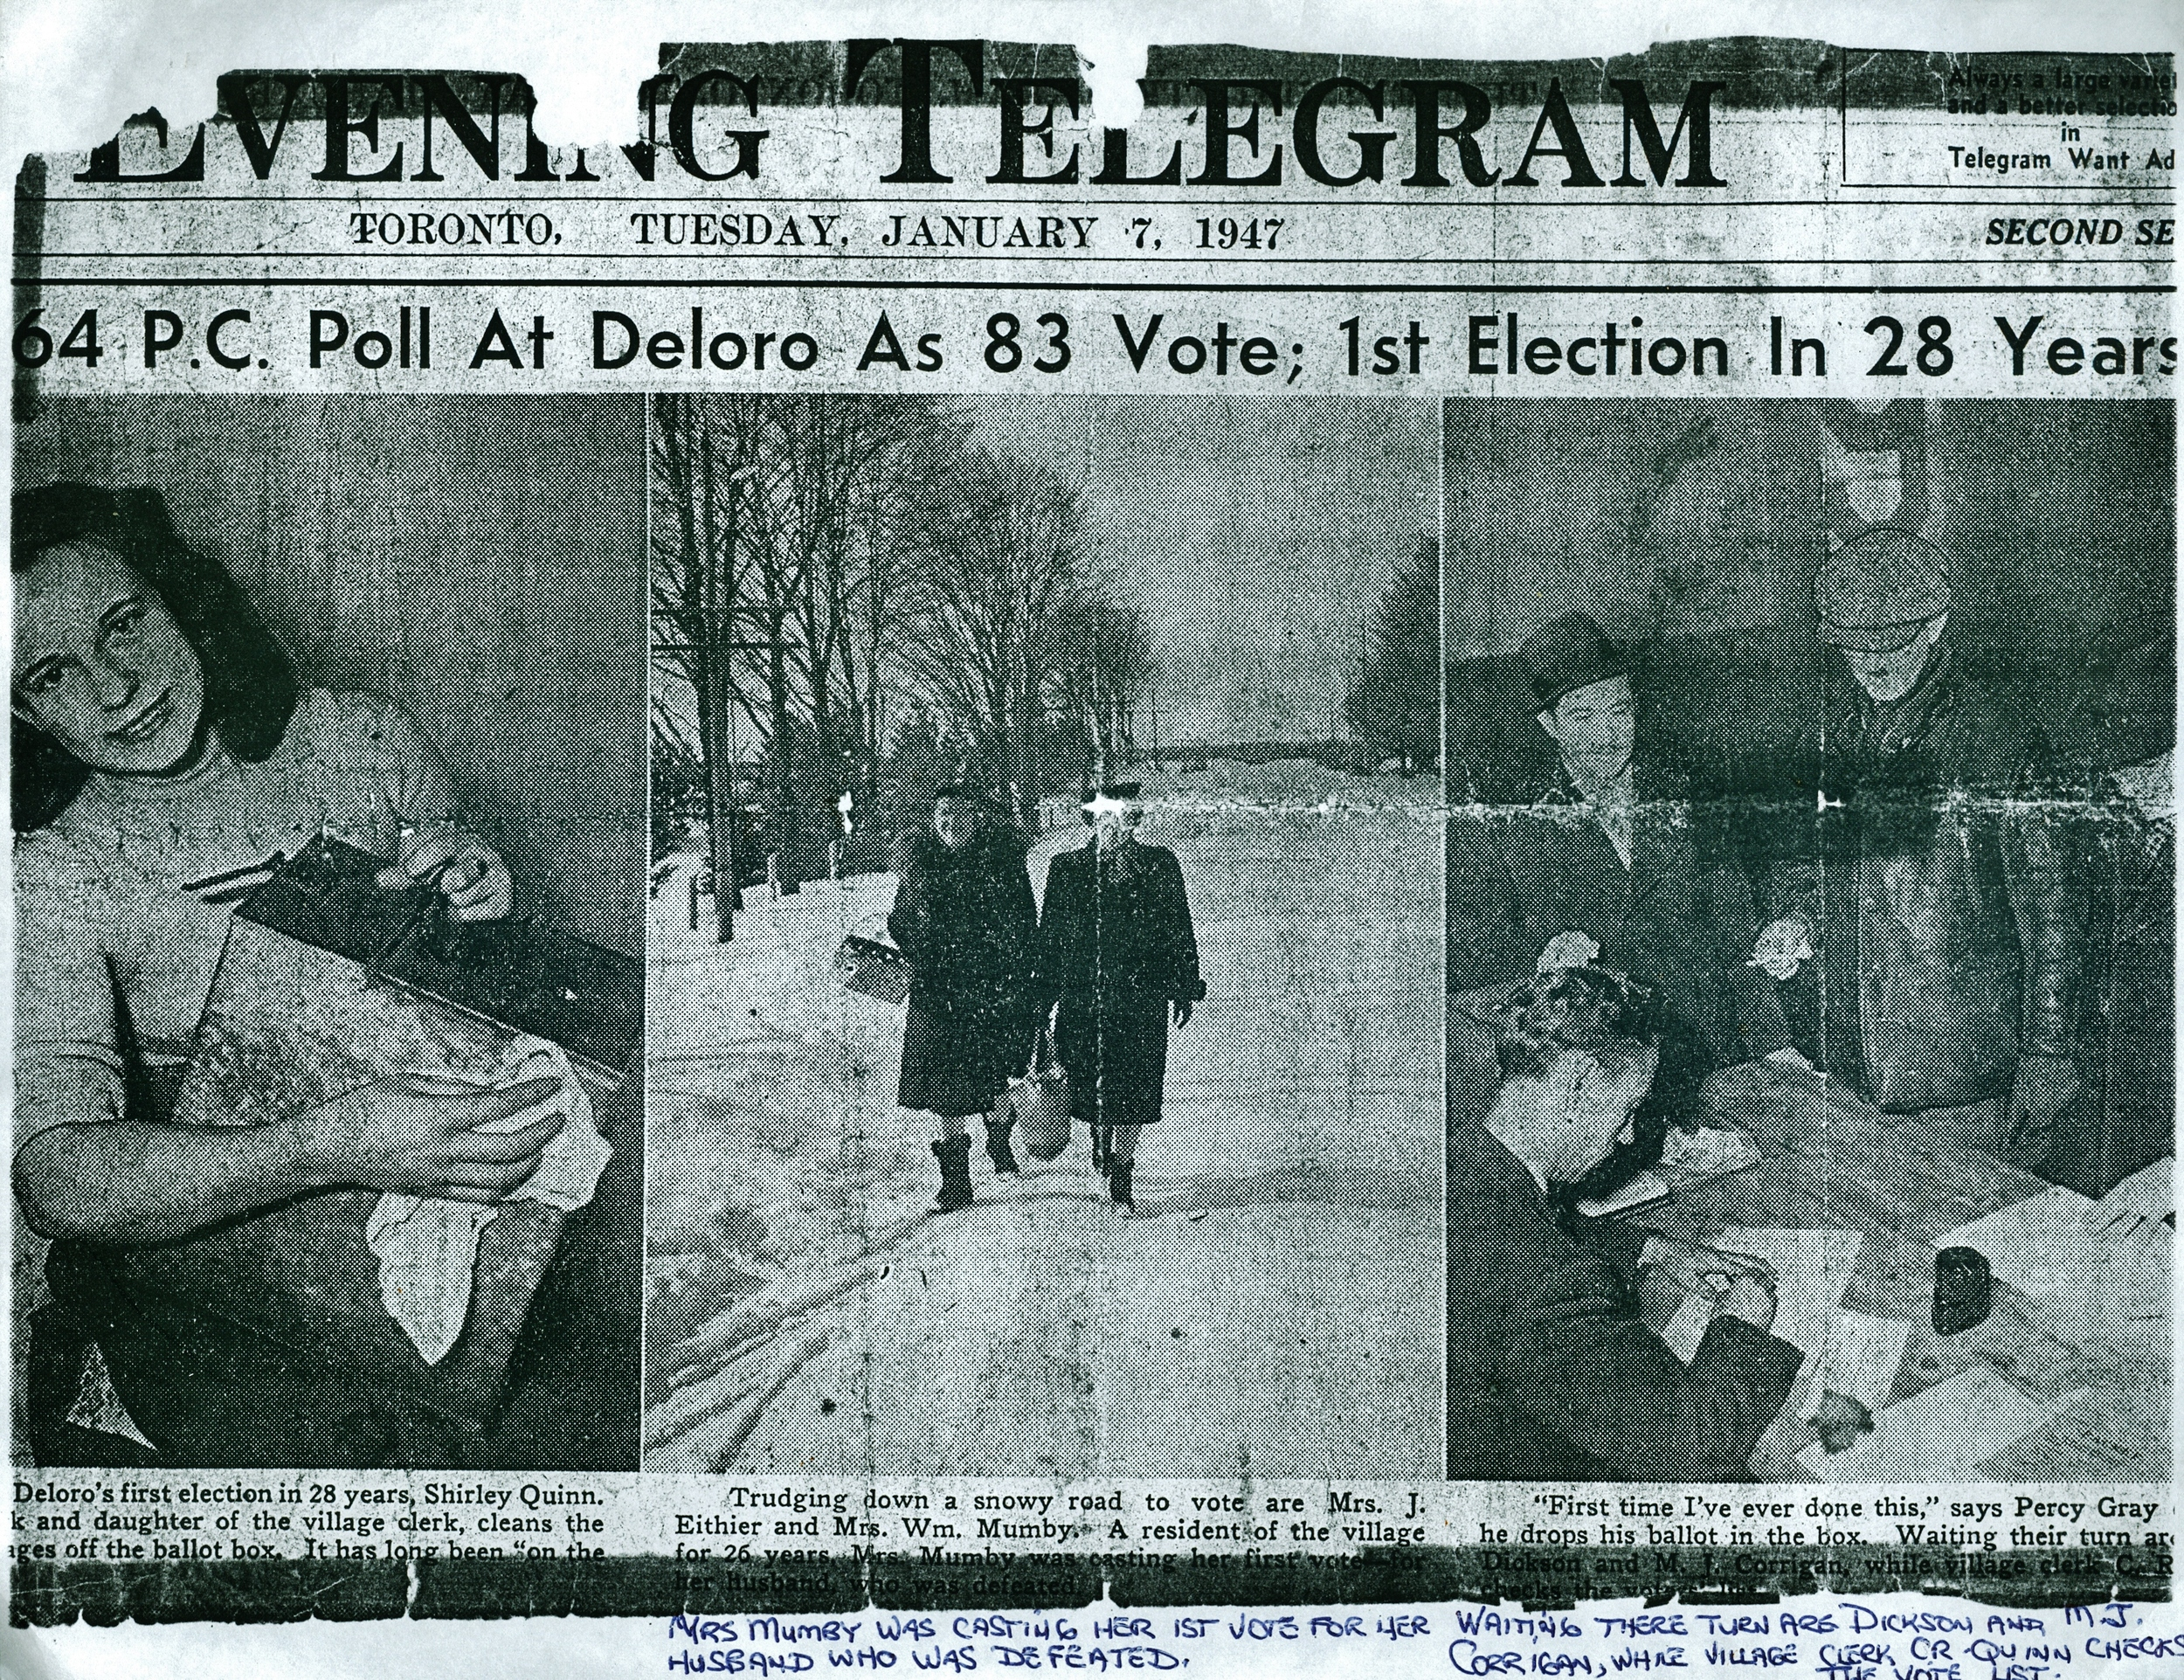 Election in Deloro 1947 S Quinn,  Mrs. J. Eithier,  Mrs. Wm Mumby,  Percy Gray,  Dickson,  M.J. Corrigan,  Clerk C.R. Quinn.jpg